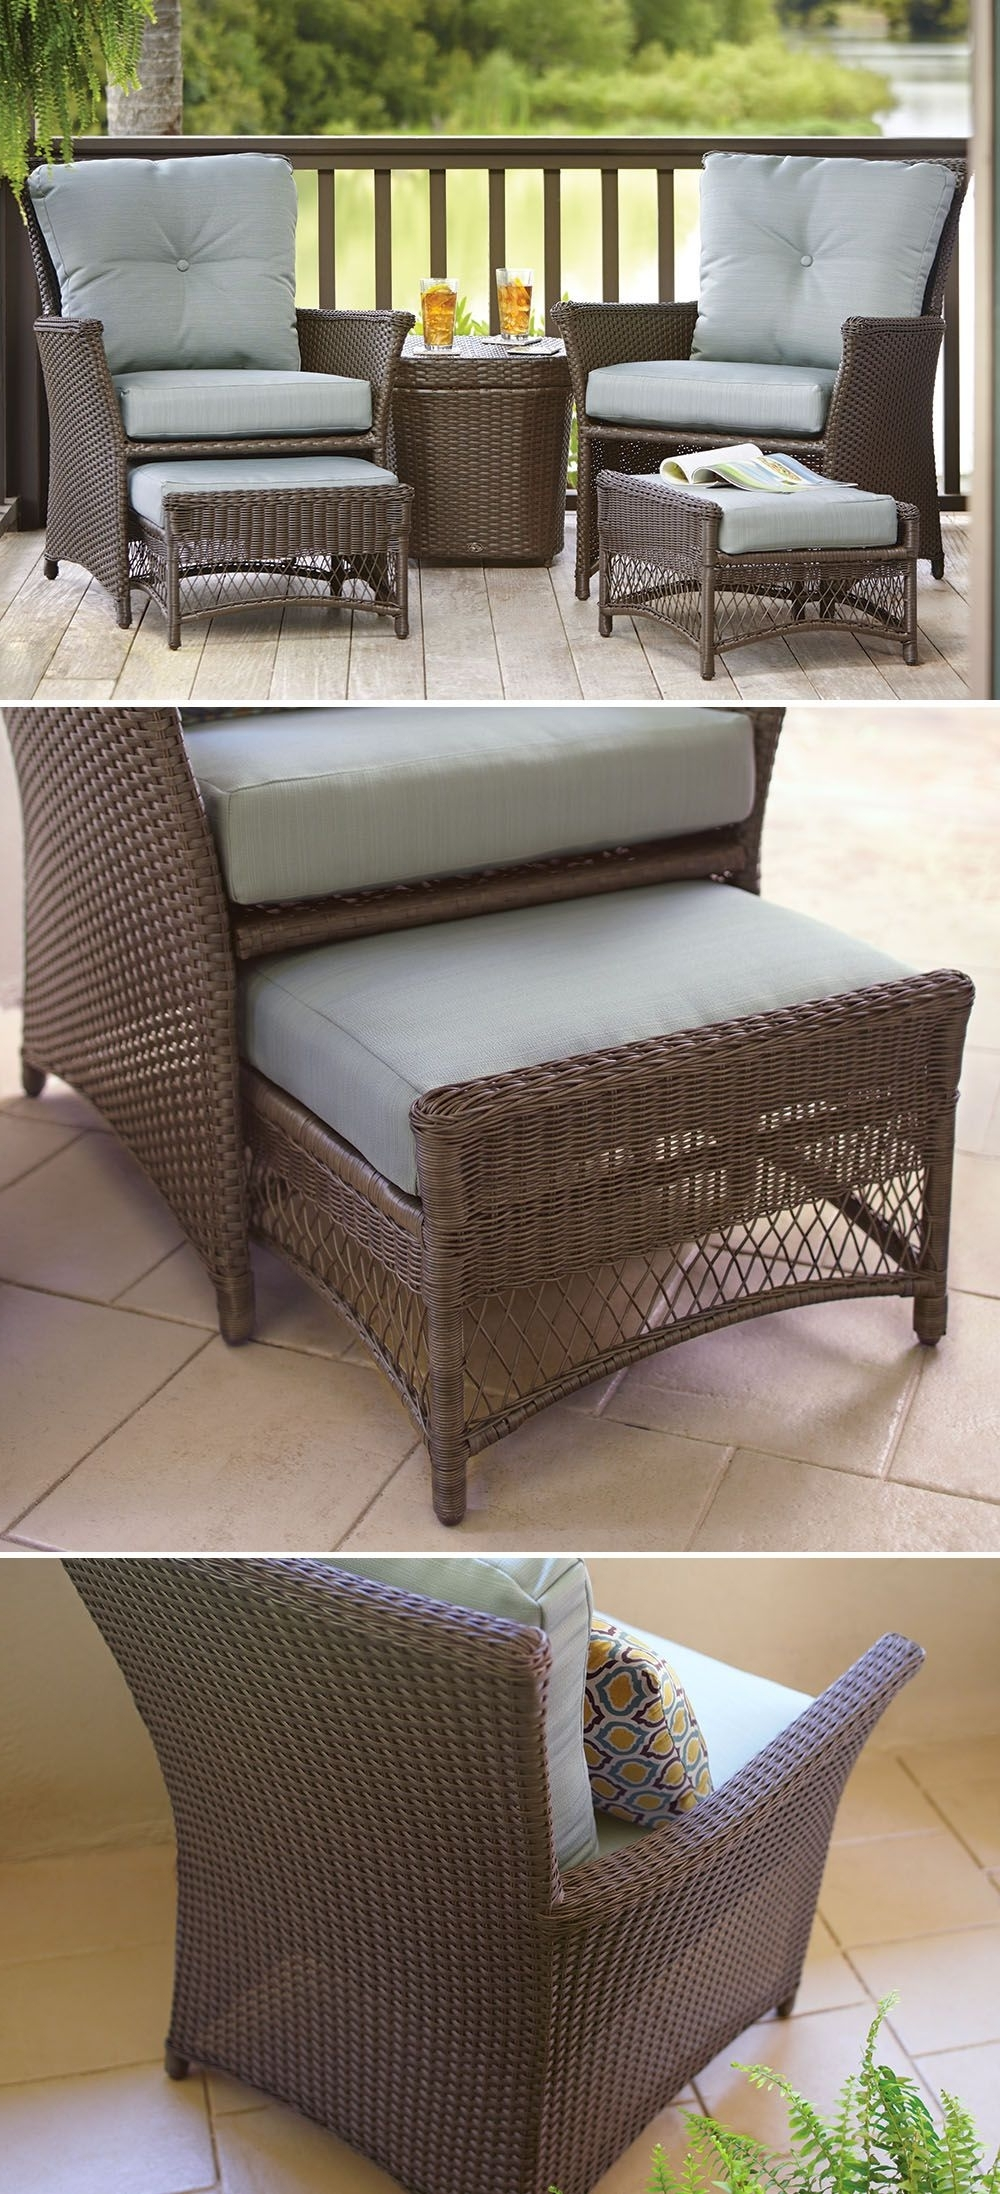 This Affordable Patio Set Is Just The Right Size For Your Small Within Famous Patio Conversation Sets With Ottoman (View 12 of 15)